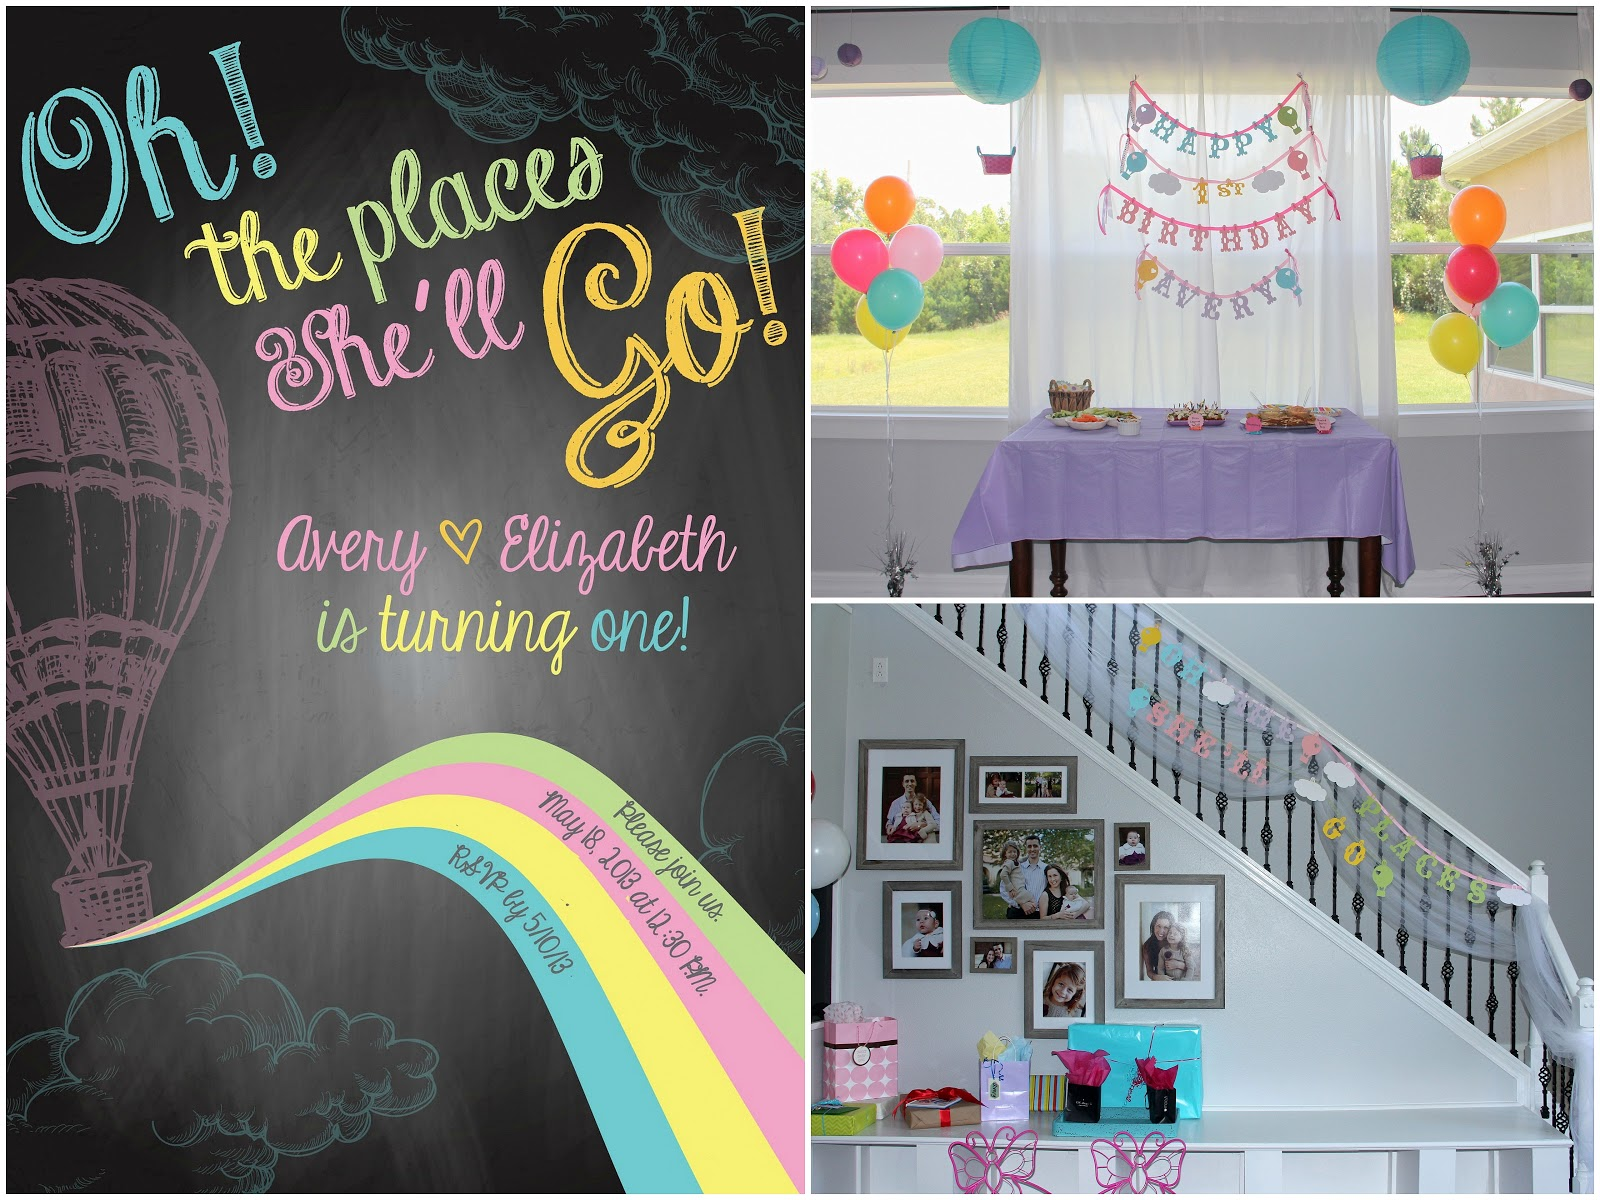 Dr Seuss 1St Birthday Party Invitations is great invitation ideas